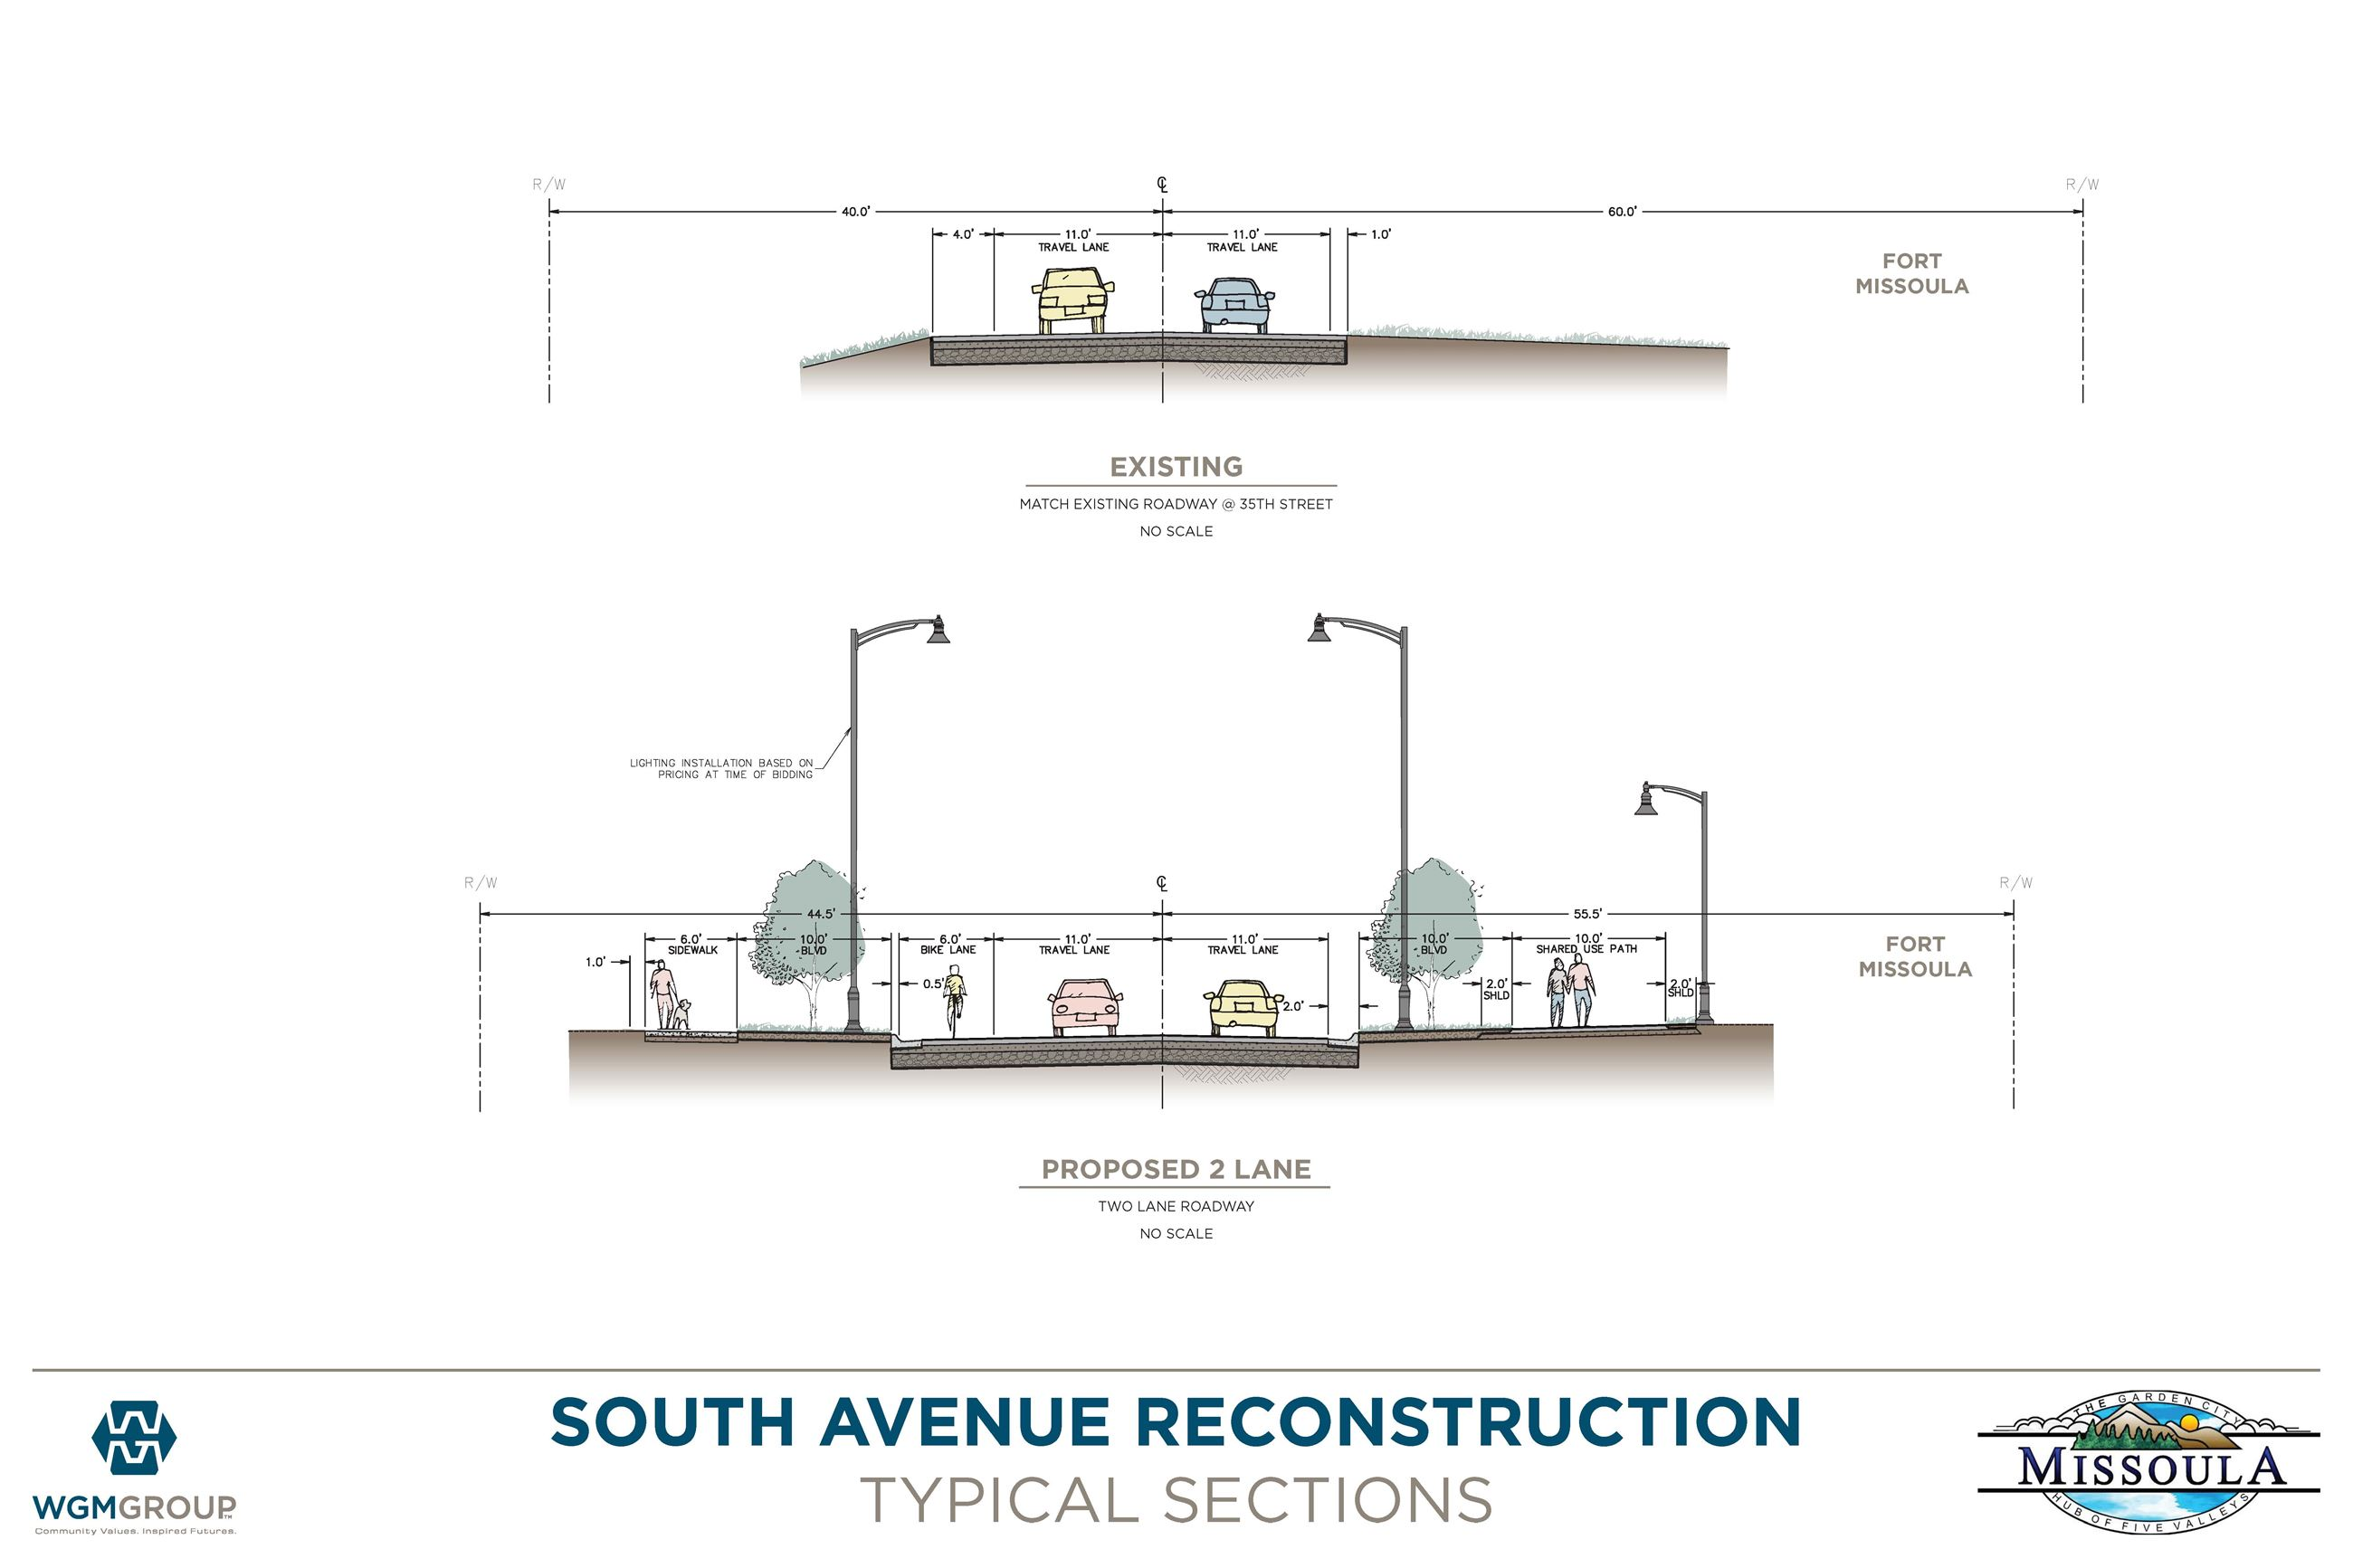 SouthAvenue_Section of Existing and Proposed 2 Lane Road